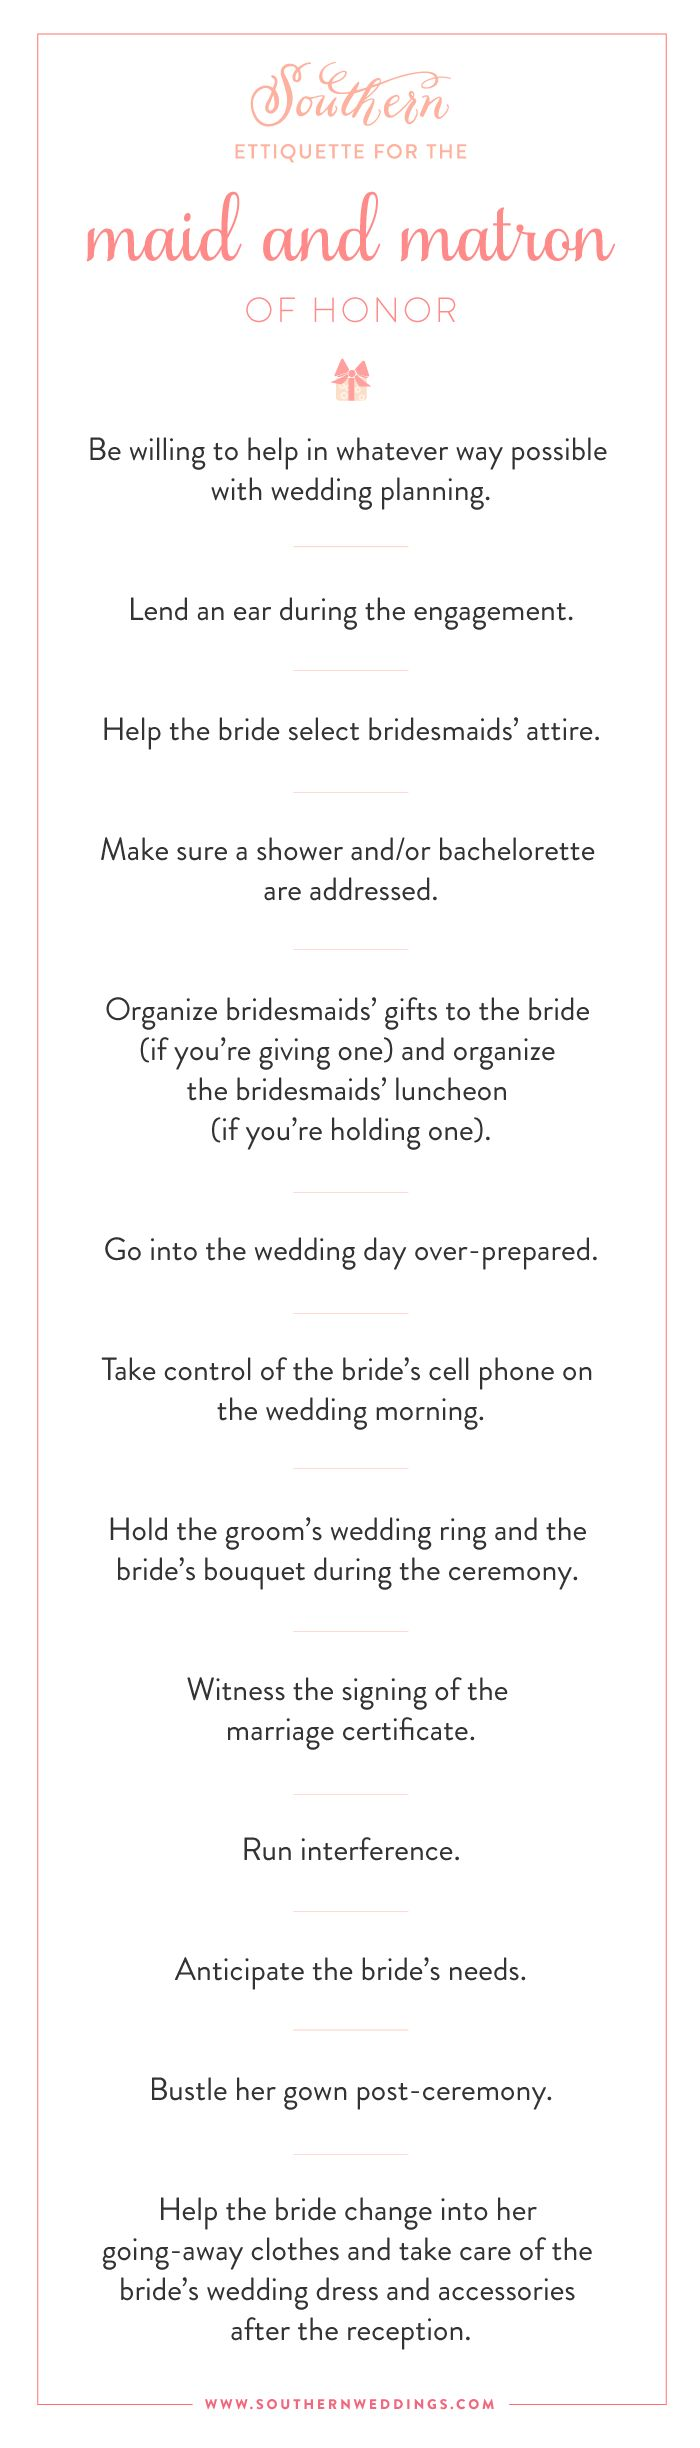 Checklist for the maid and matron of honor! Everything you need to know!